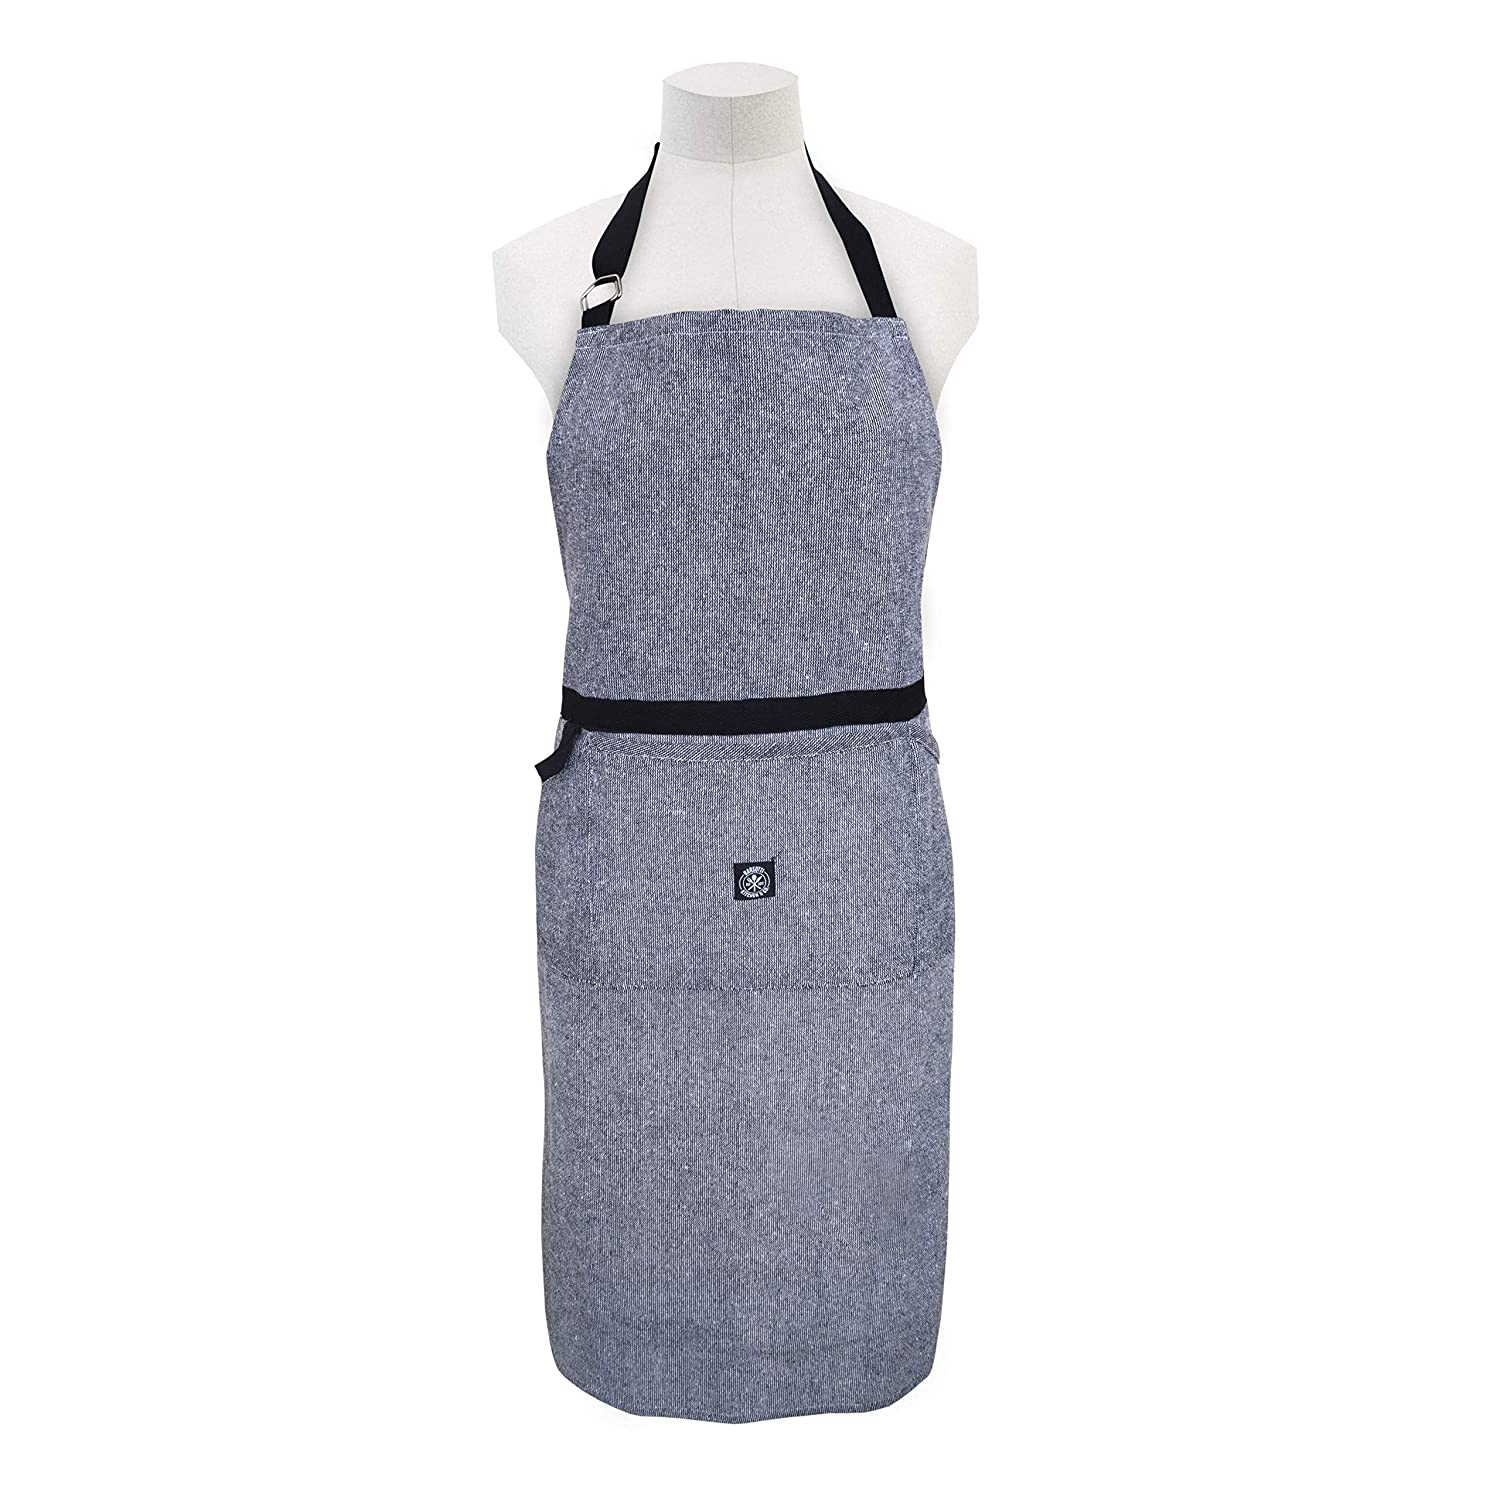 DAILY HOME ESSENTIALS Kitchen Chef Apron with Pockets and Adjustable Neck Strap For Men & Women. Heavy Duty Bib Aprons For Cooking, Grilling, Baking, Crafting, Gardening, BBQ & More (Chambray Black) Samy's Mart